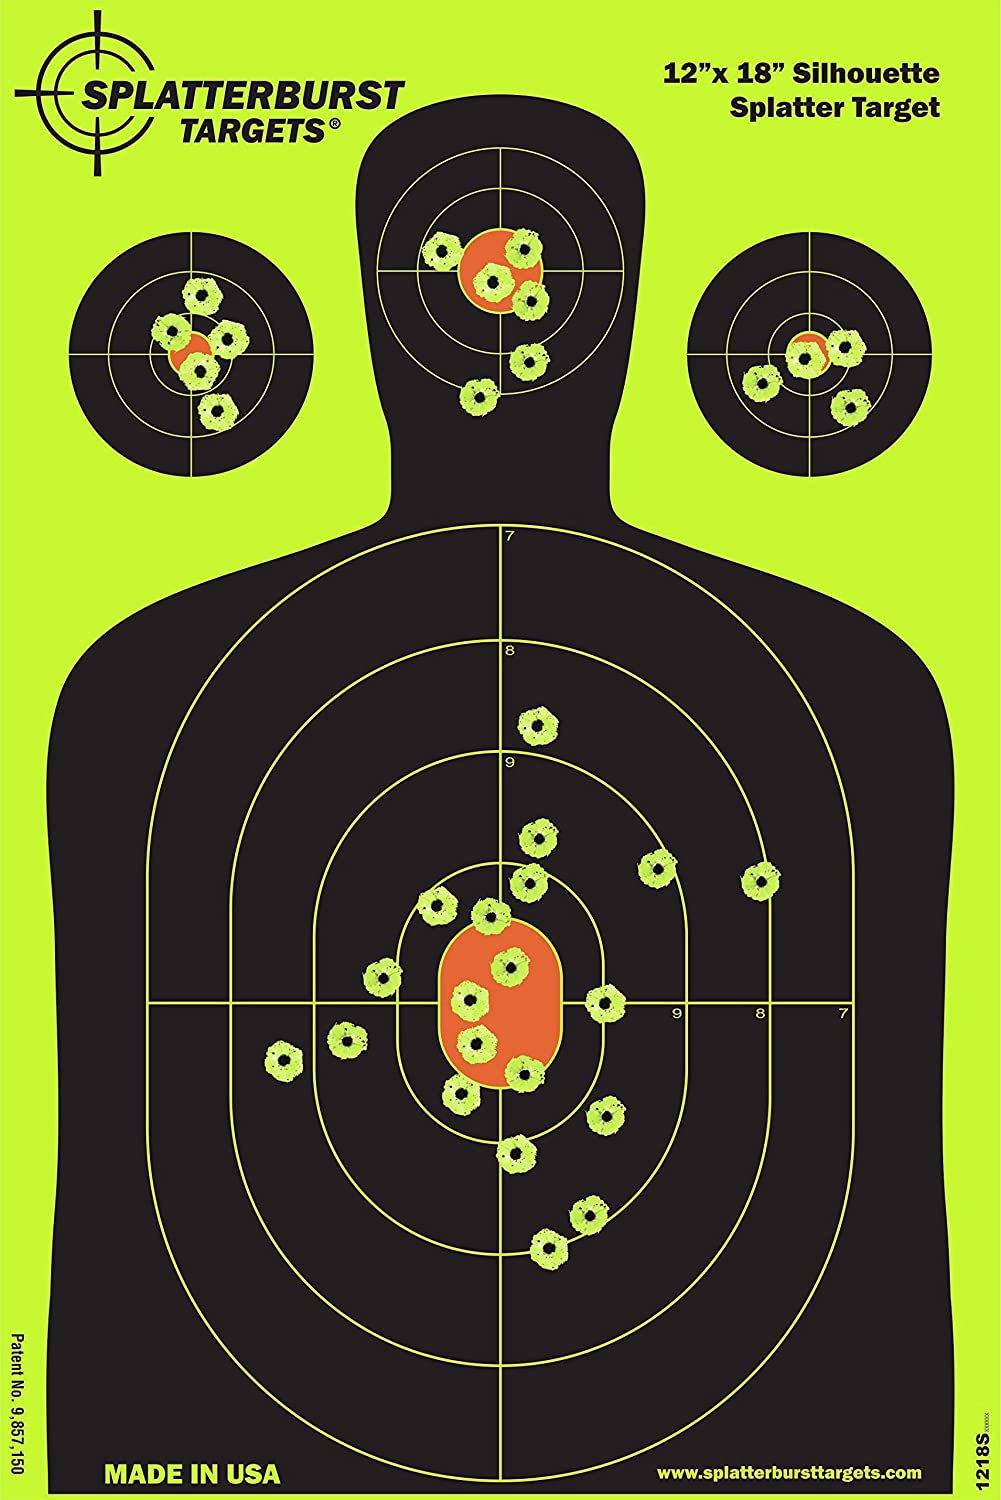 Splatterburst Targets - 12 x18 inch - Silhouette Reactive Shooting Target - Shots Burst Bright Fluorescent Yellow Upon Impact - Gun - Rifle - Pistol - Airsoft - BB Gun - Air Rifle : Sports & Outdoors